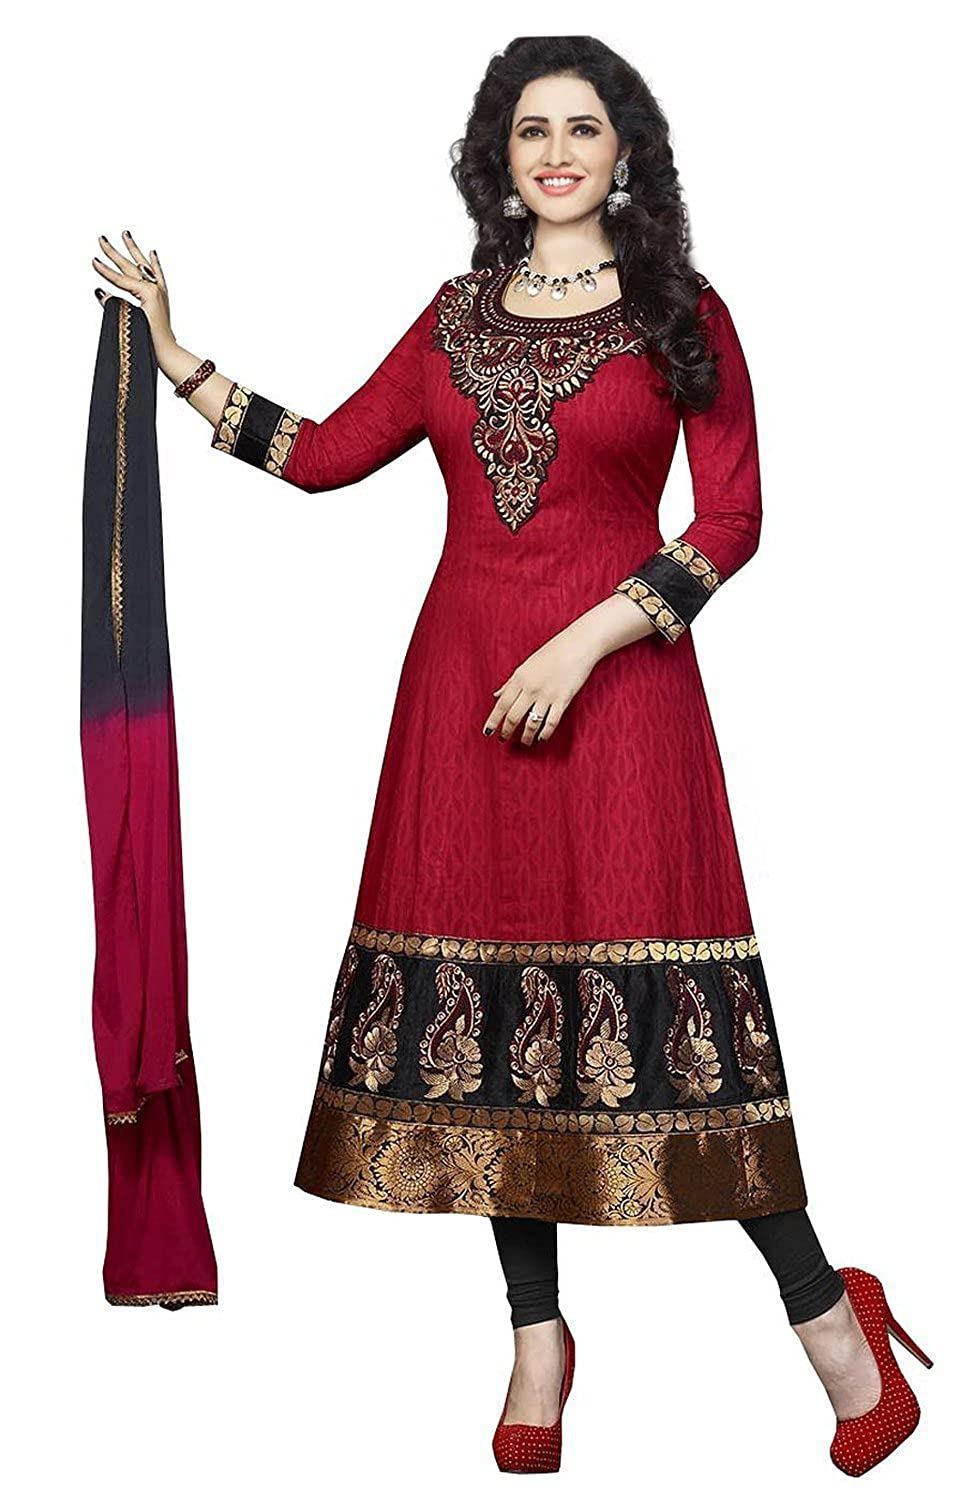 40-80% Off On Women's Fashion By Amazon | Divyaemporio Women'S Cotton Resham Anarkali Unstitched Salwar Suits Dress Material (Red_Free Size) @ Rs.499